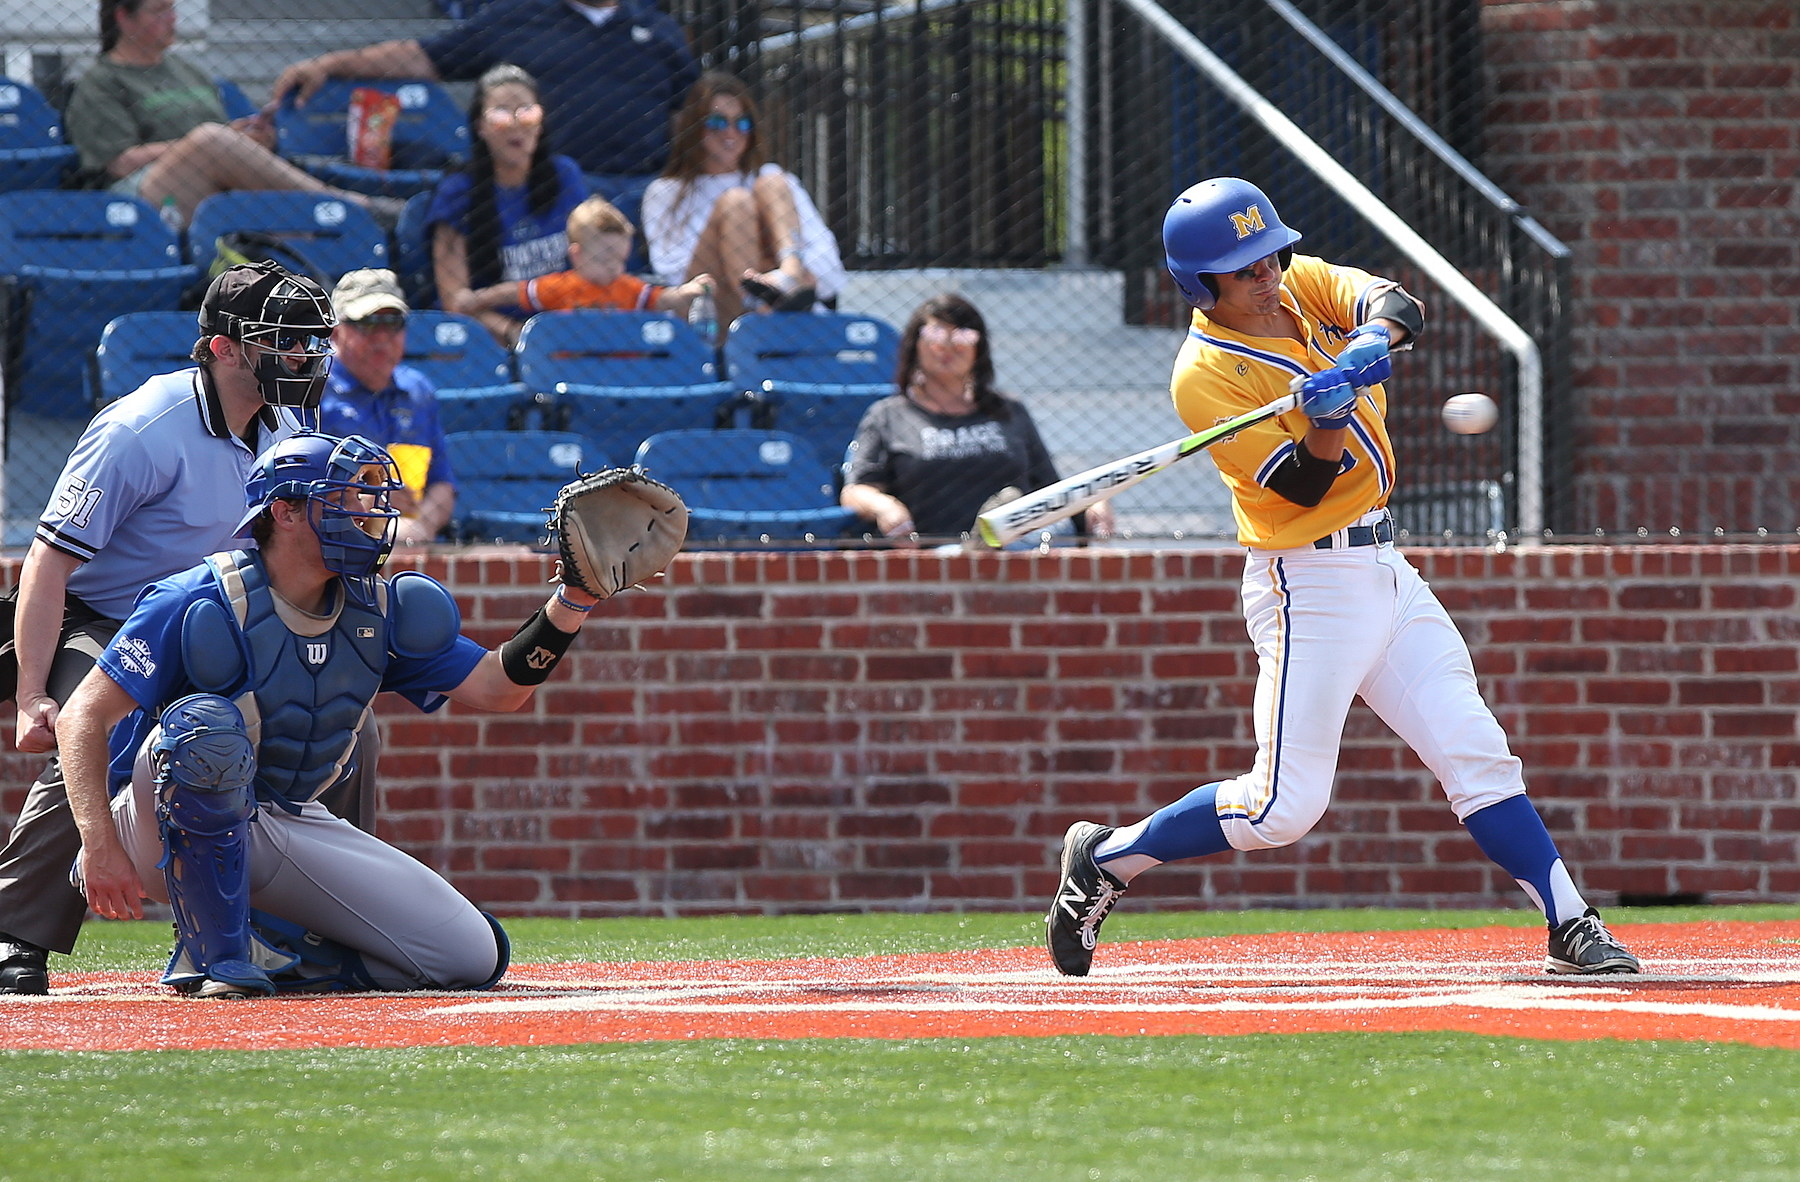 McNeese Baseball (Photo provided Matt Bonnette MSU)